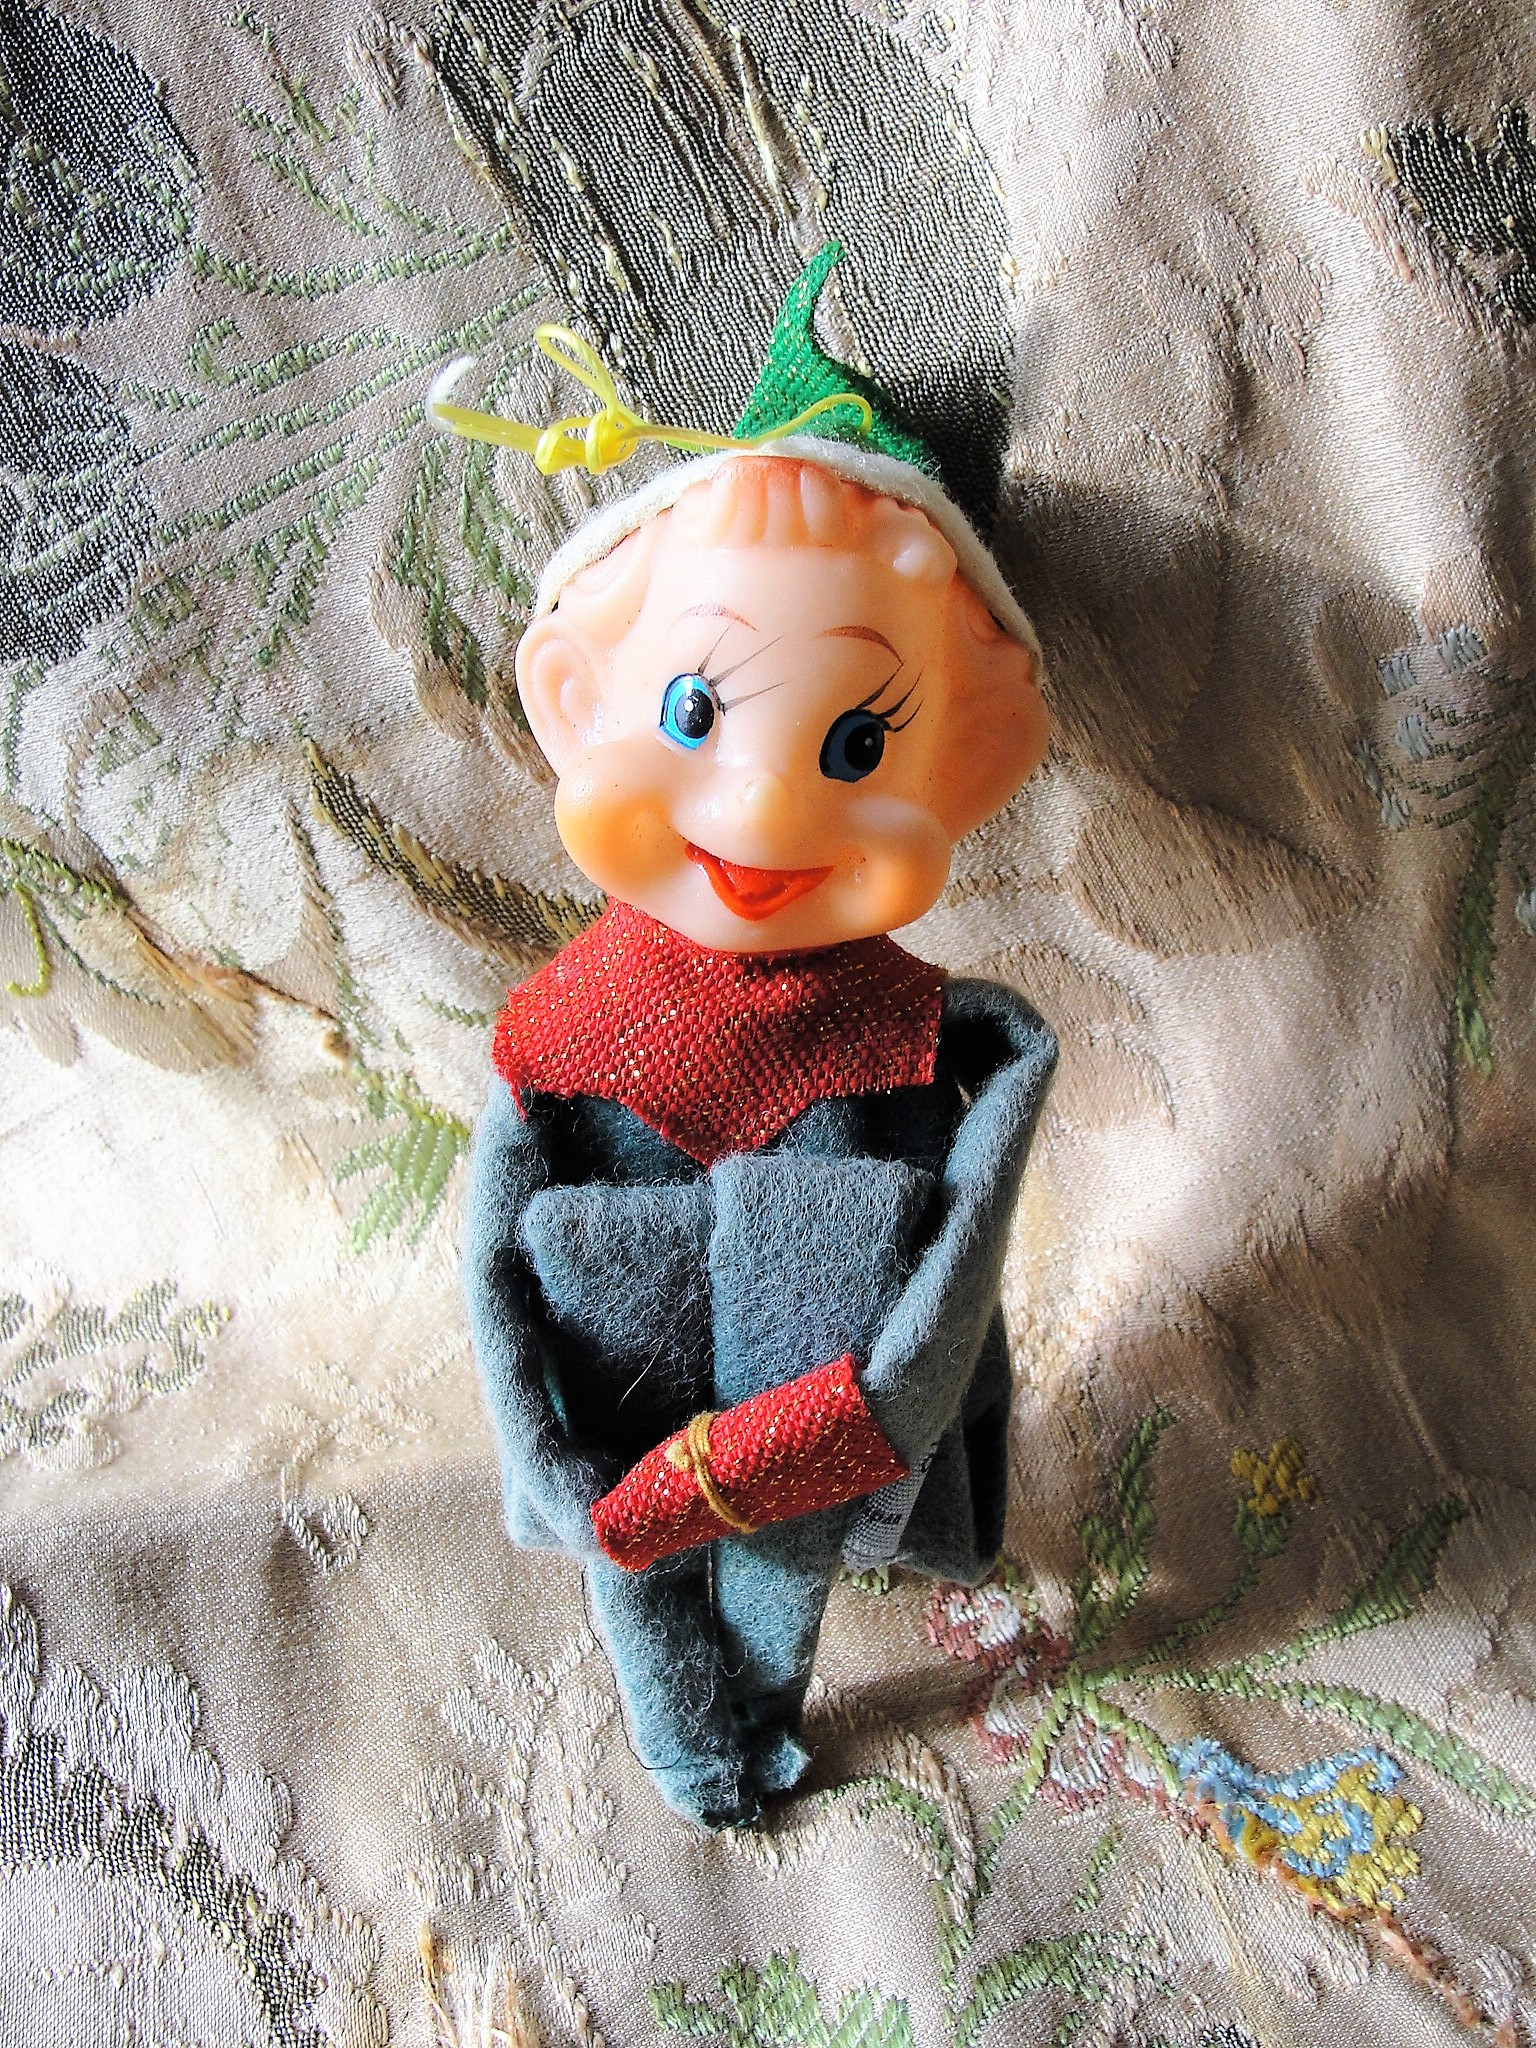 ADORABLE Vintage 1950s 60s Green Knee Hugger Pixie Elf, Large Size Elf Shelf Sitter Japan Kitsch Elf Kitschy Christmas Ornament Mid Century Christmas Decorations